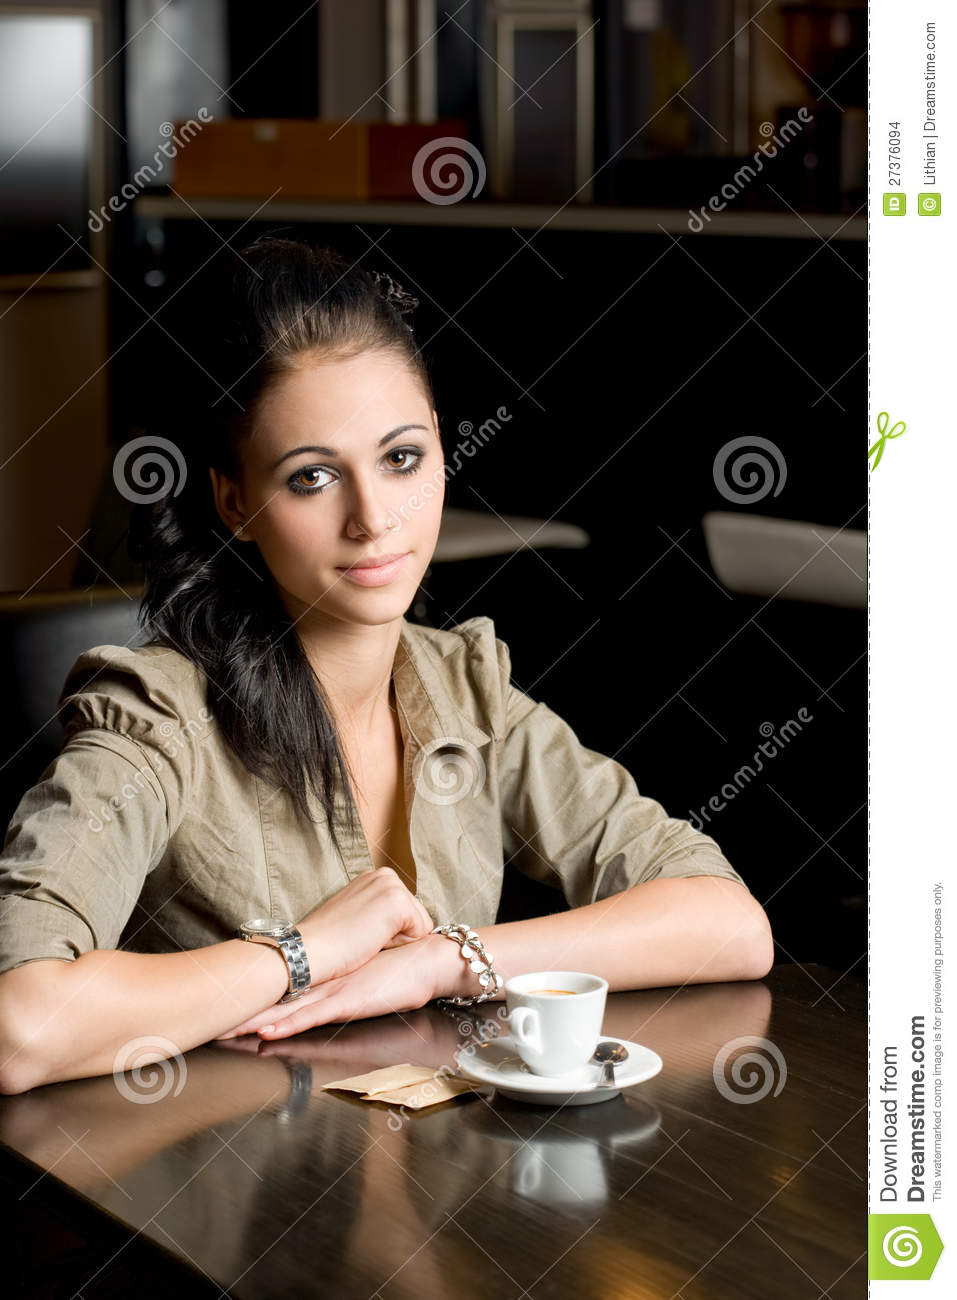 Lonely Boutique In Newmarket Auckland By Rufus Knight: Lonely Brunette In A Coffee Shop. Stock Images